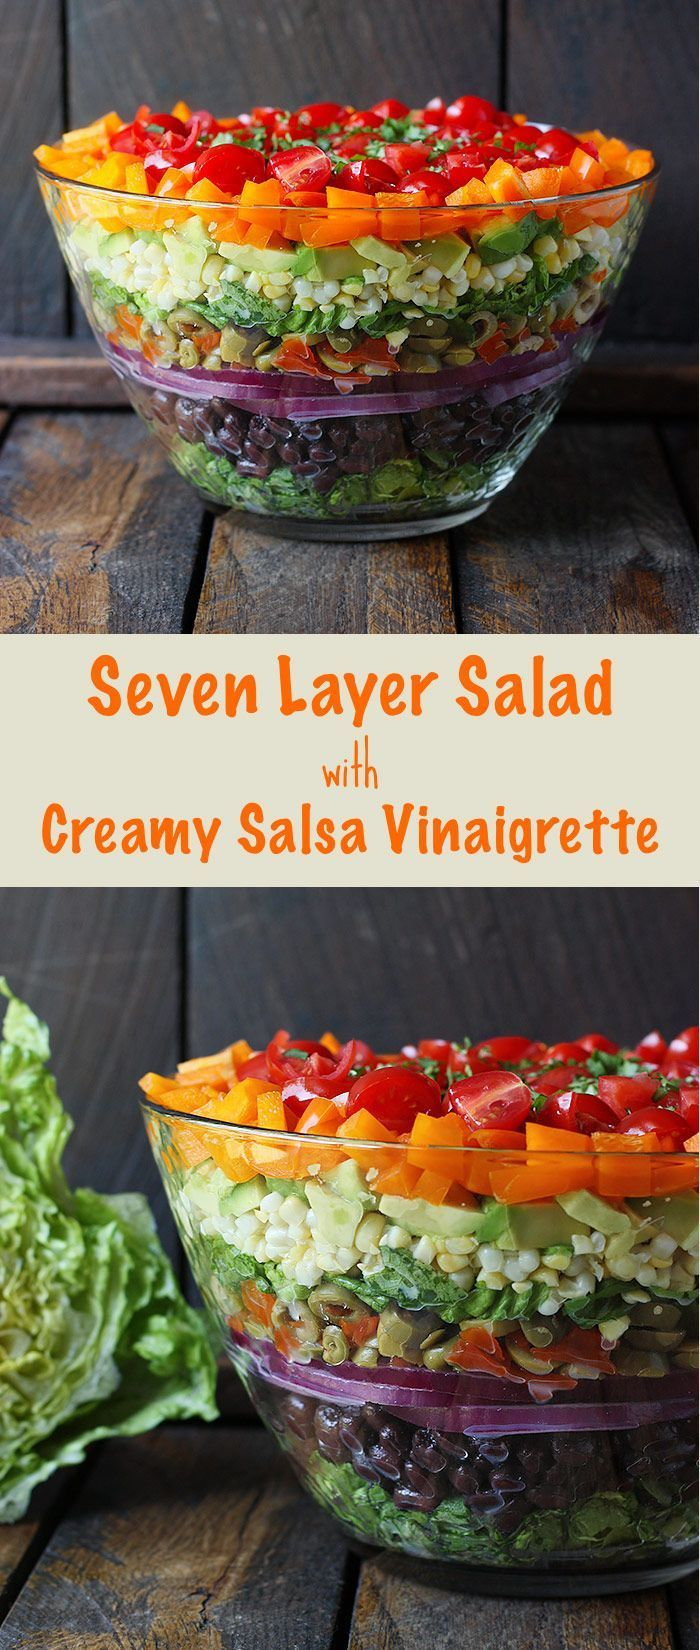 Show-stopping Seven Layer Salad with Creamy Salsa Vinaigrette from SoupAddict.com